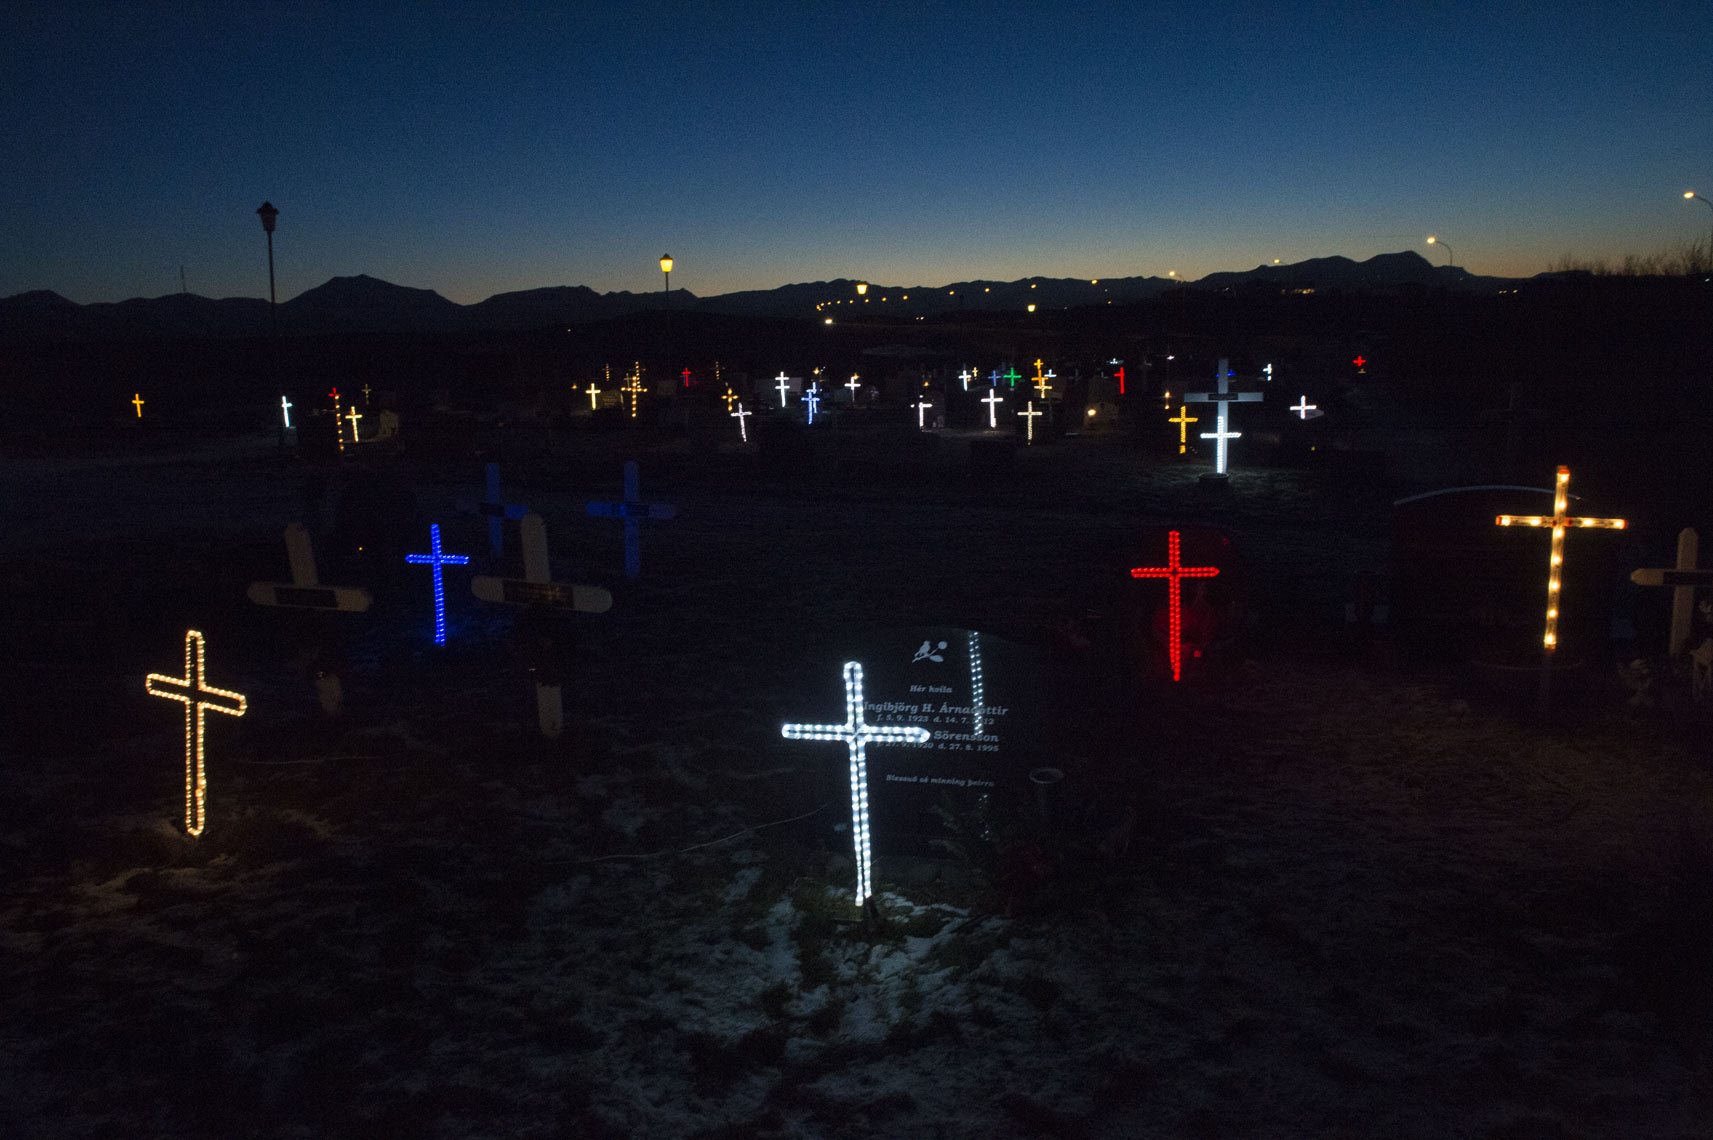 icelandic-winter-illuminated-cemetery